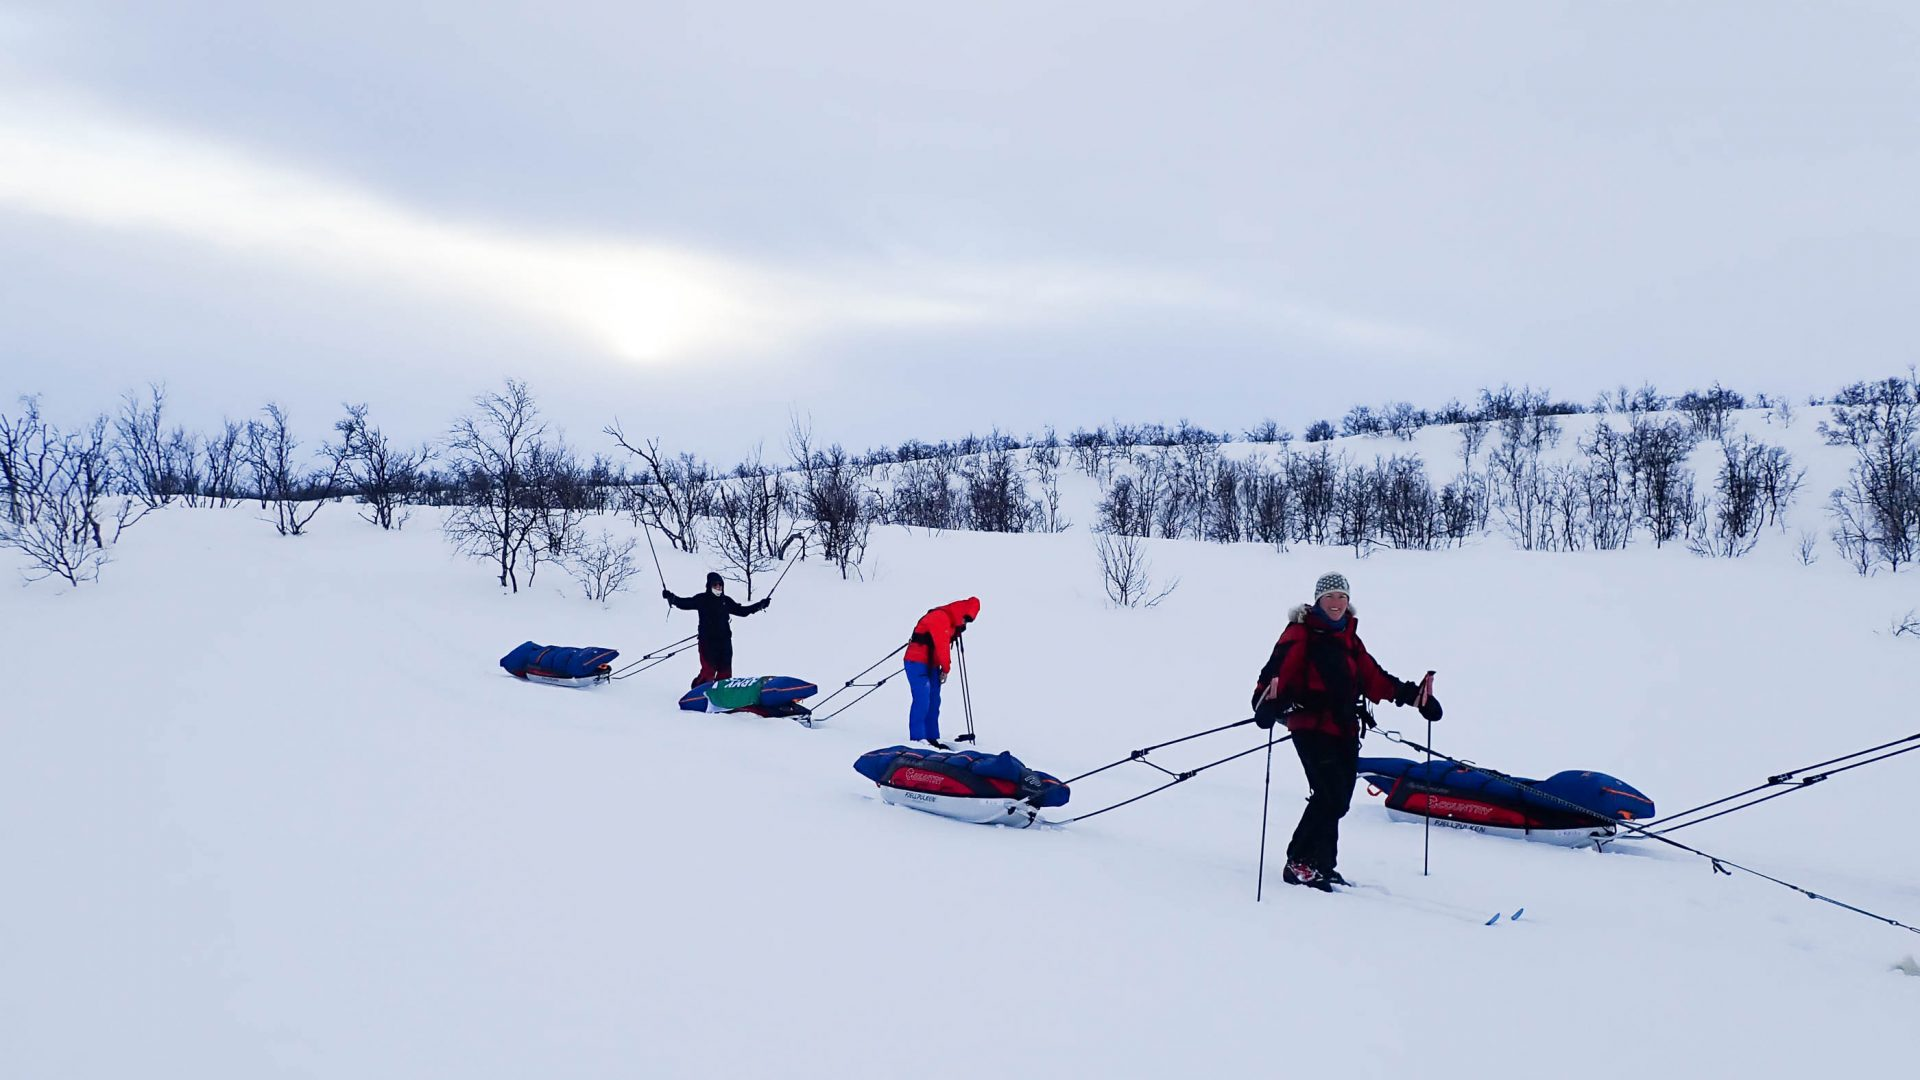 Travelers together pulling their sleds.